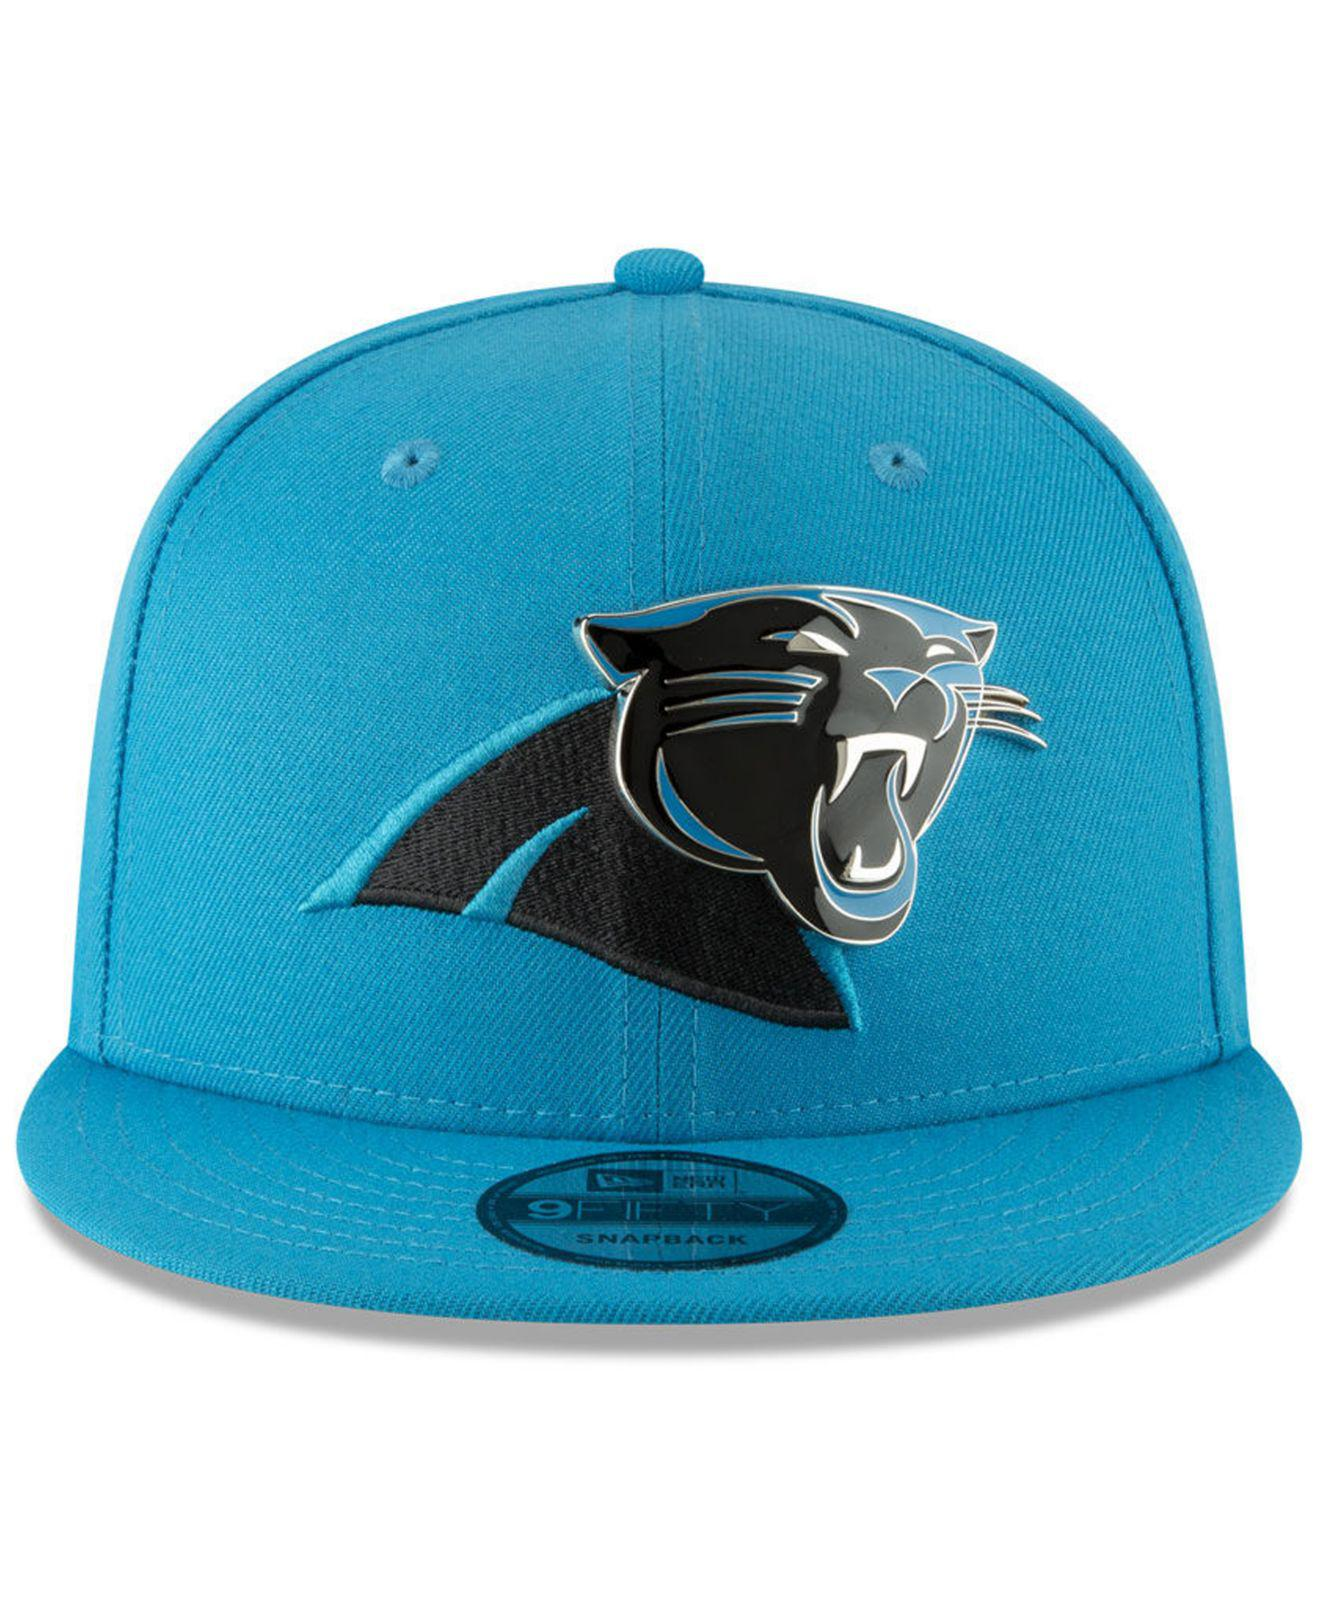 new style c5264 93946 ... canada ireland lyst ktz carolina panthers metal thread 9fifty snapback  cap in blue for men 12718